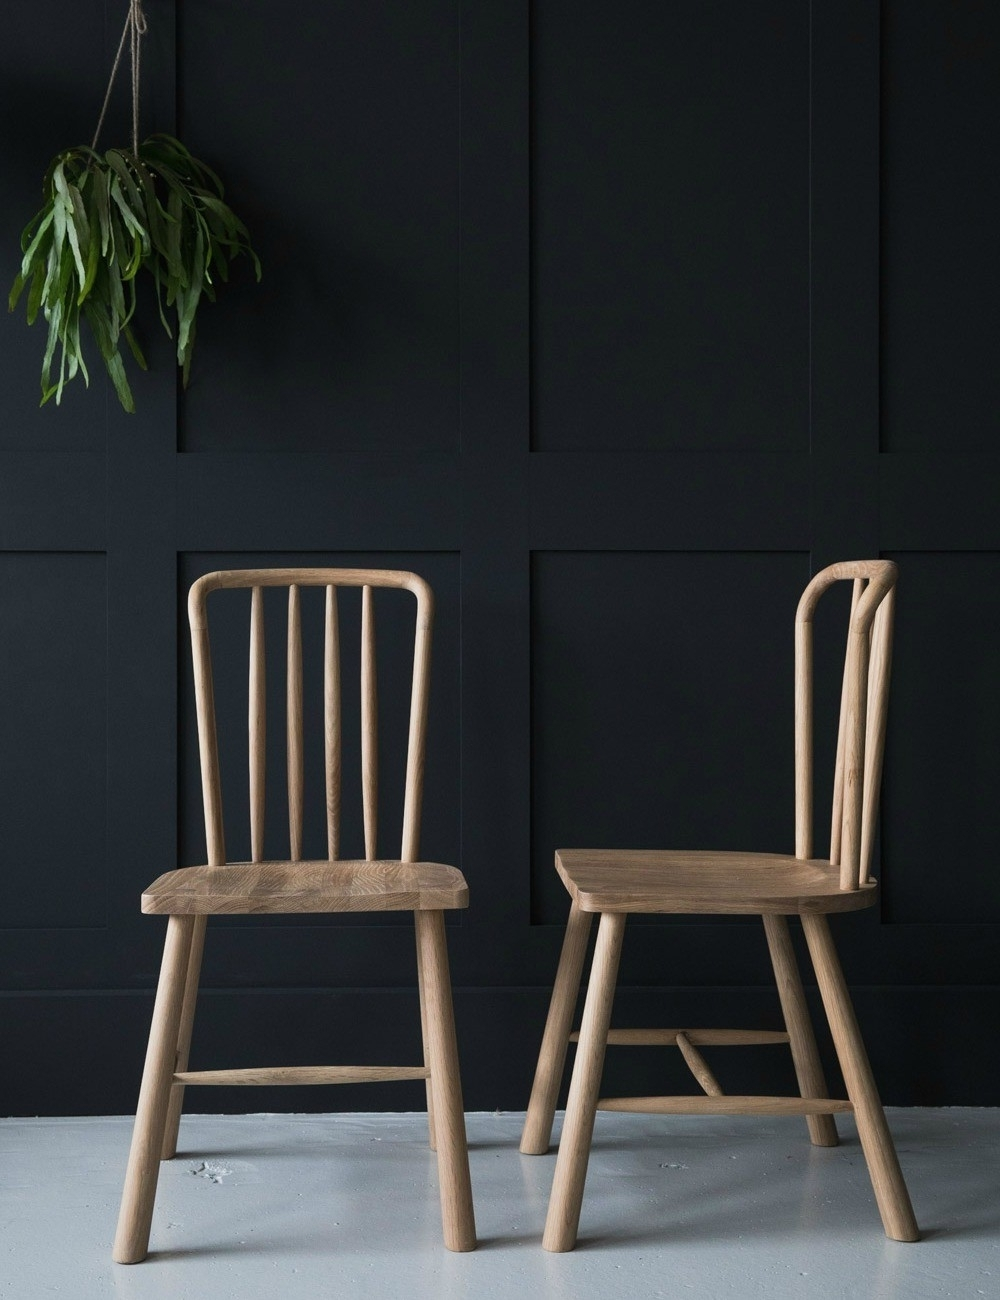 Nordic Wooden Dining Chairs in 2017 Dining Chairs